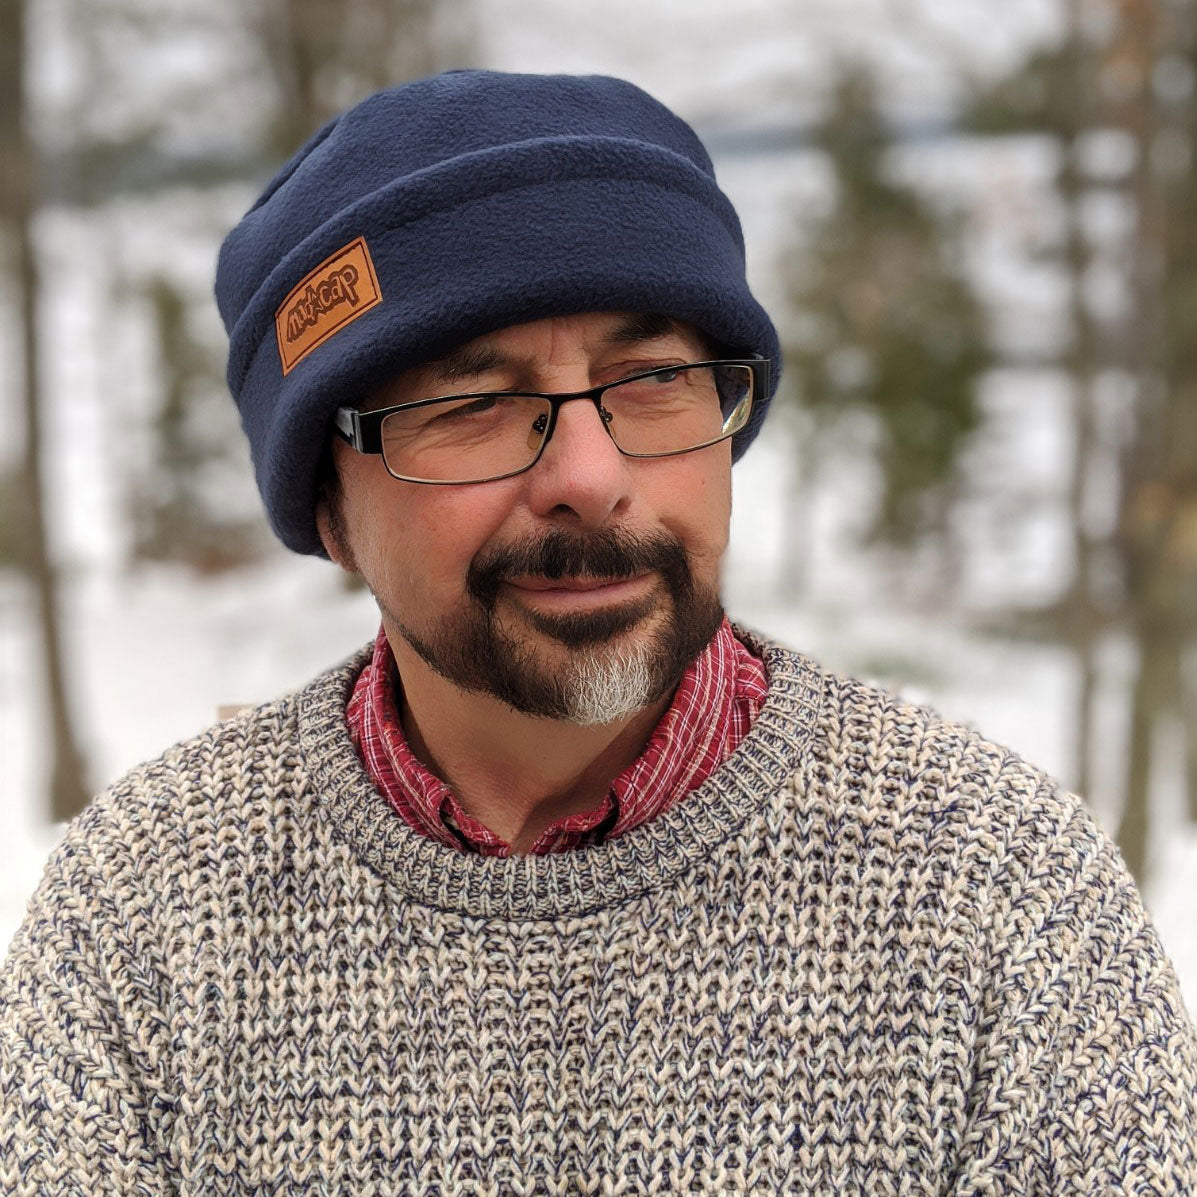 a-Men's or Unisex Fleece Toque with adjustable cuff